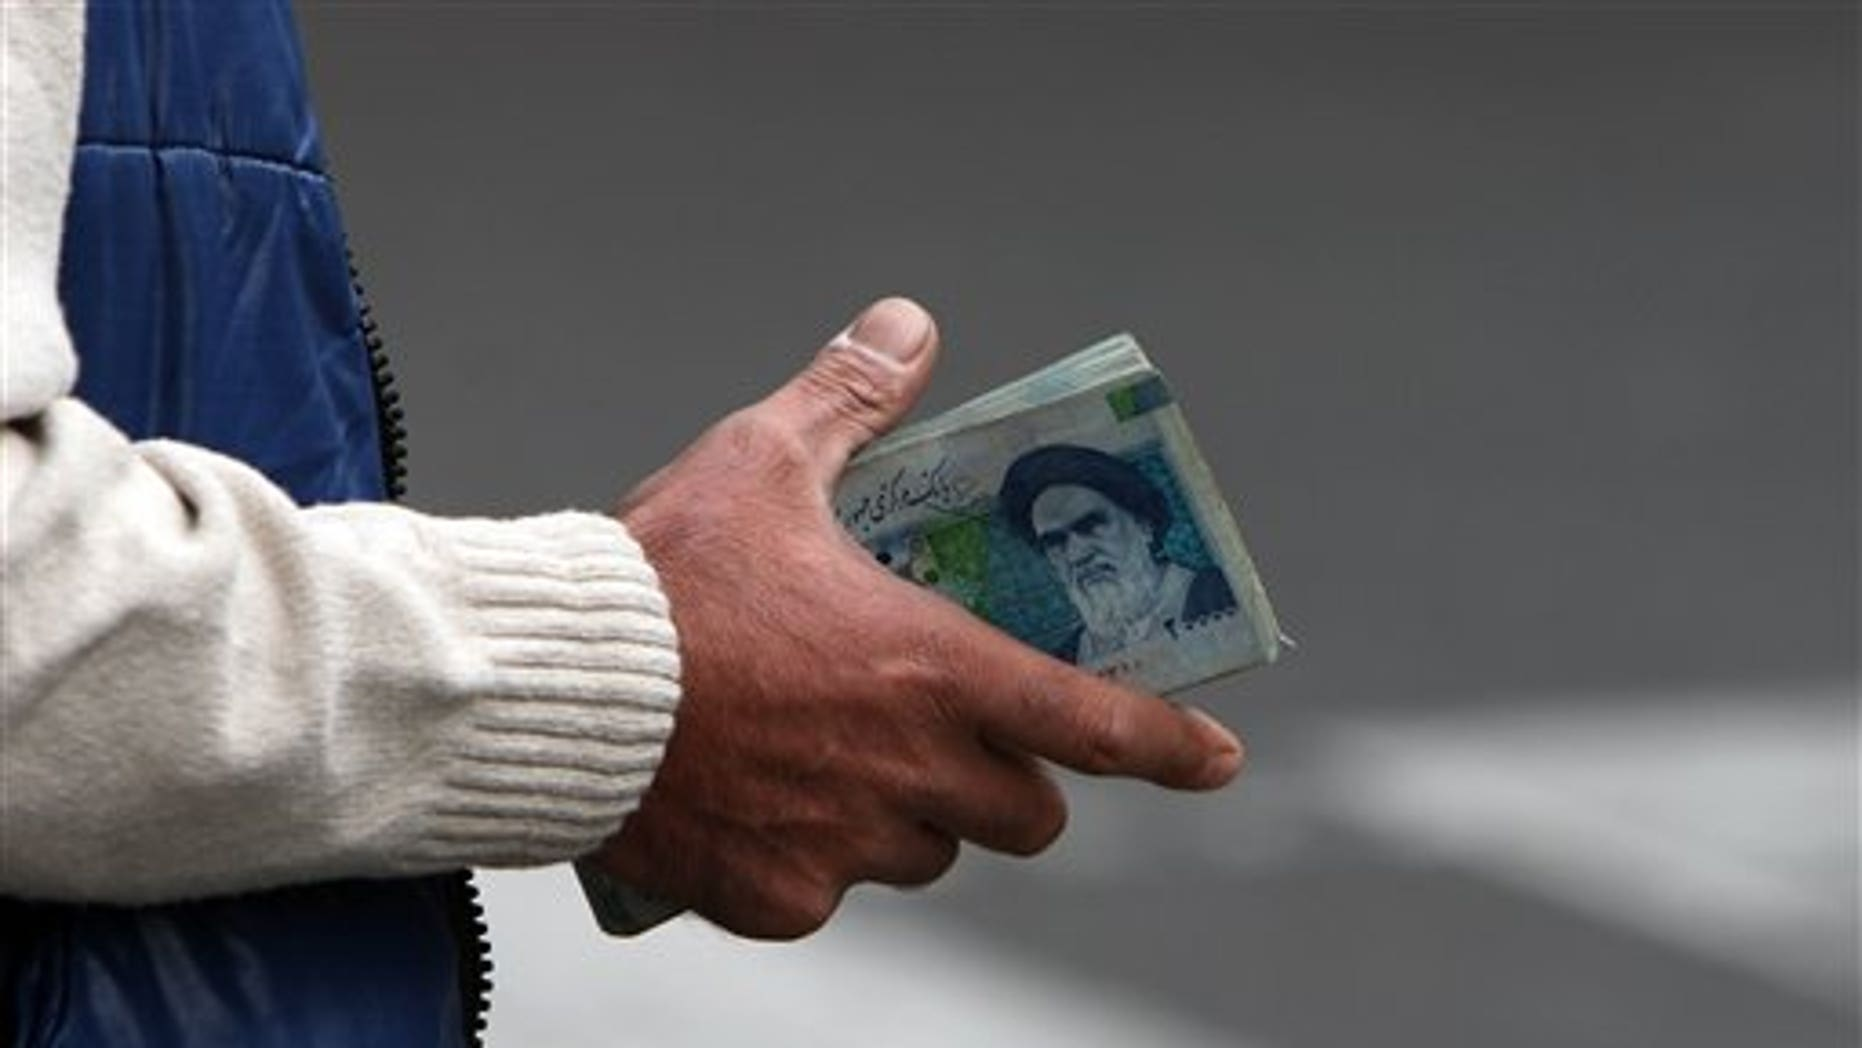 Oct. 30, 2008: In this file photo, an Iranian money changer holds currency with Ayatollah Ruhollah Khomeini's image in Tehran, Iran.